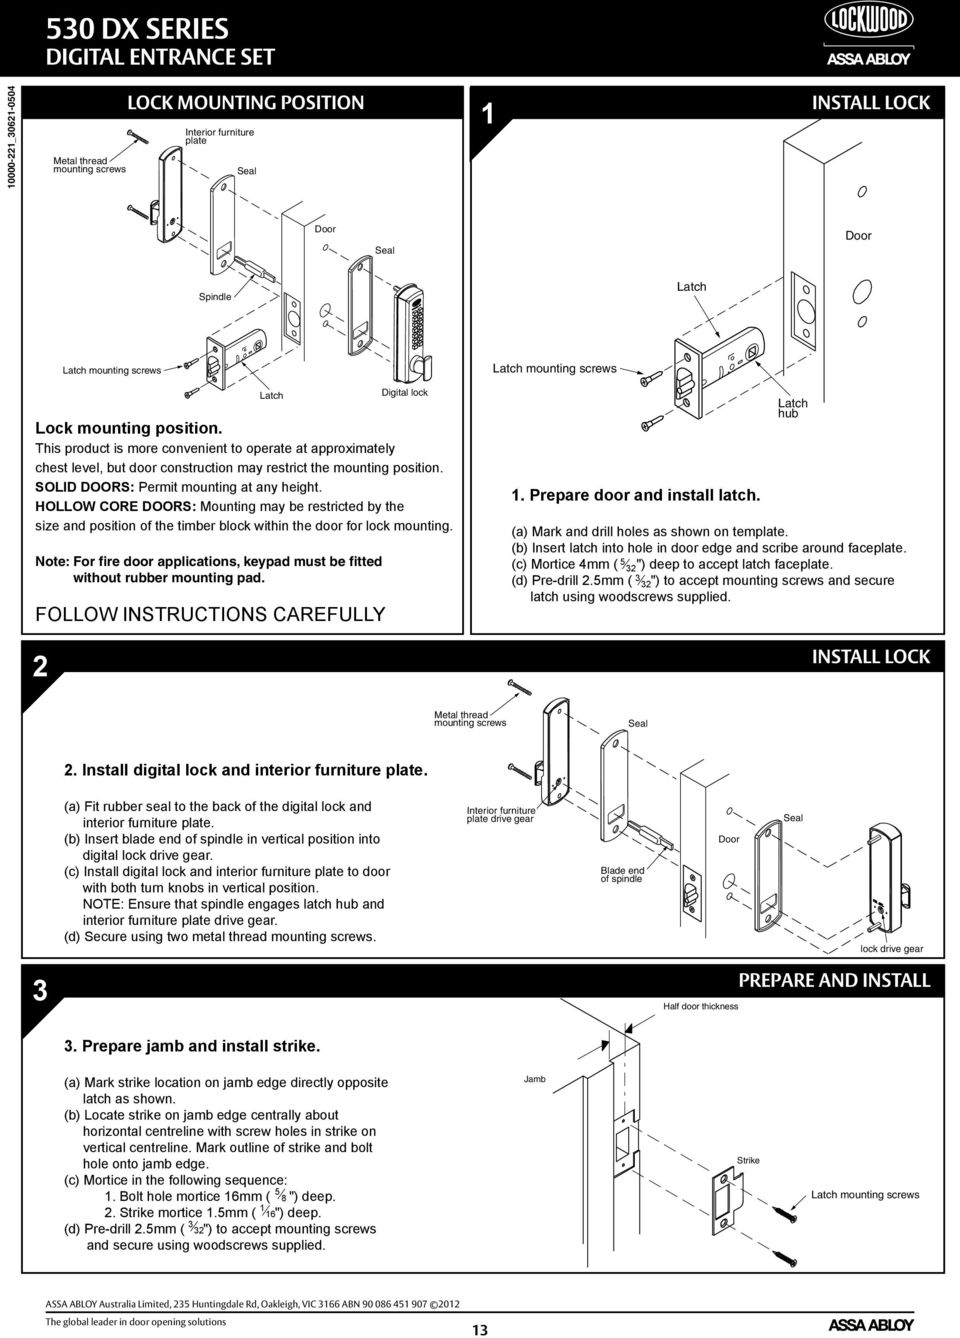 Dx Mechanical Digital Door Locks Service Manual Assa Abloy The Diagram How To Replace A Defective Sliding Latch Ford This Product Is More Convenient Operate At Approximately Chest Level But Construction May